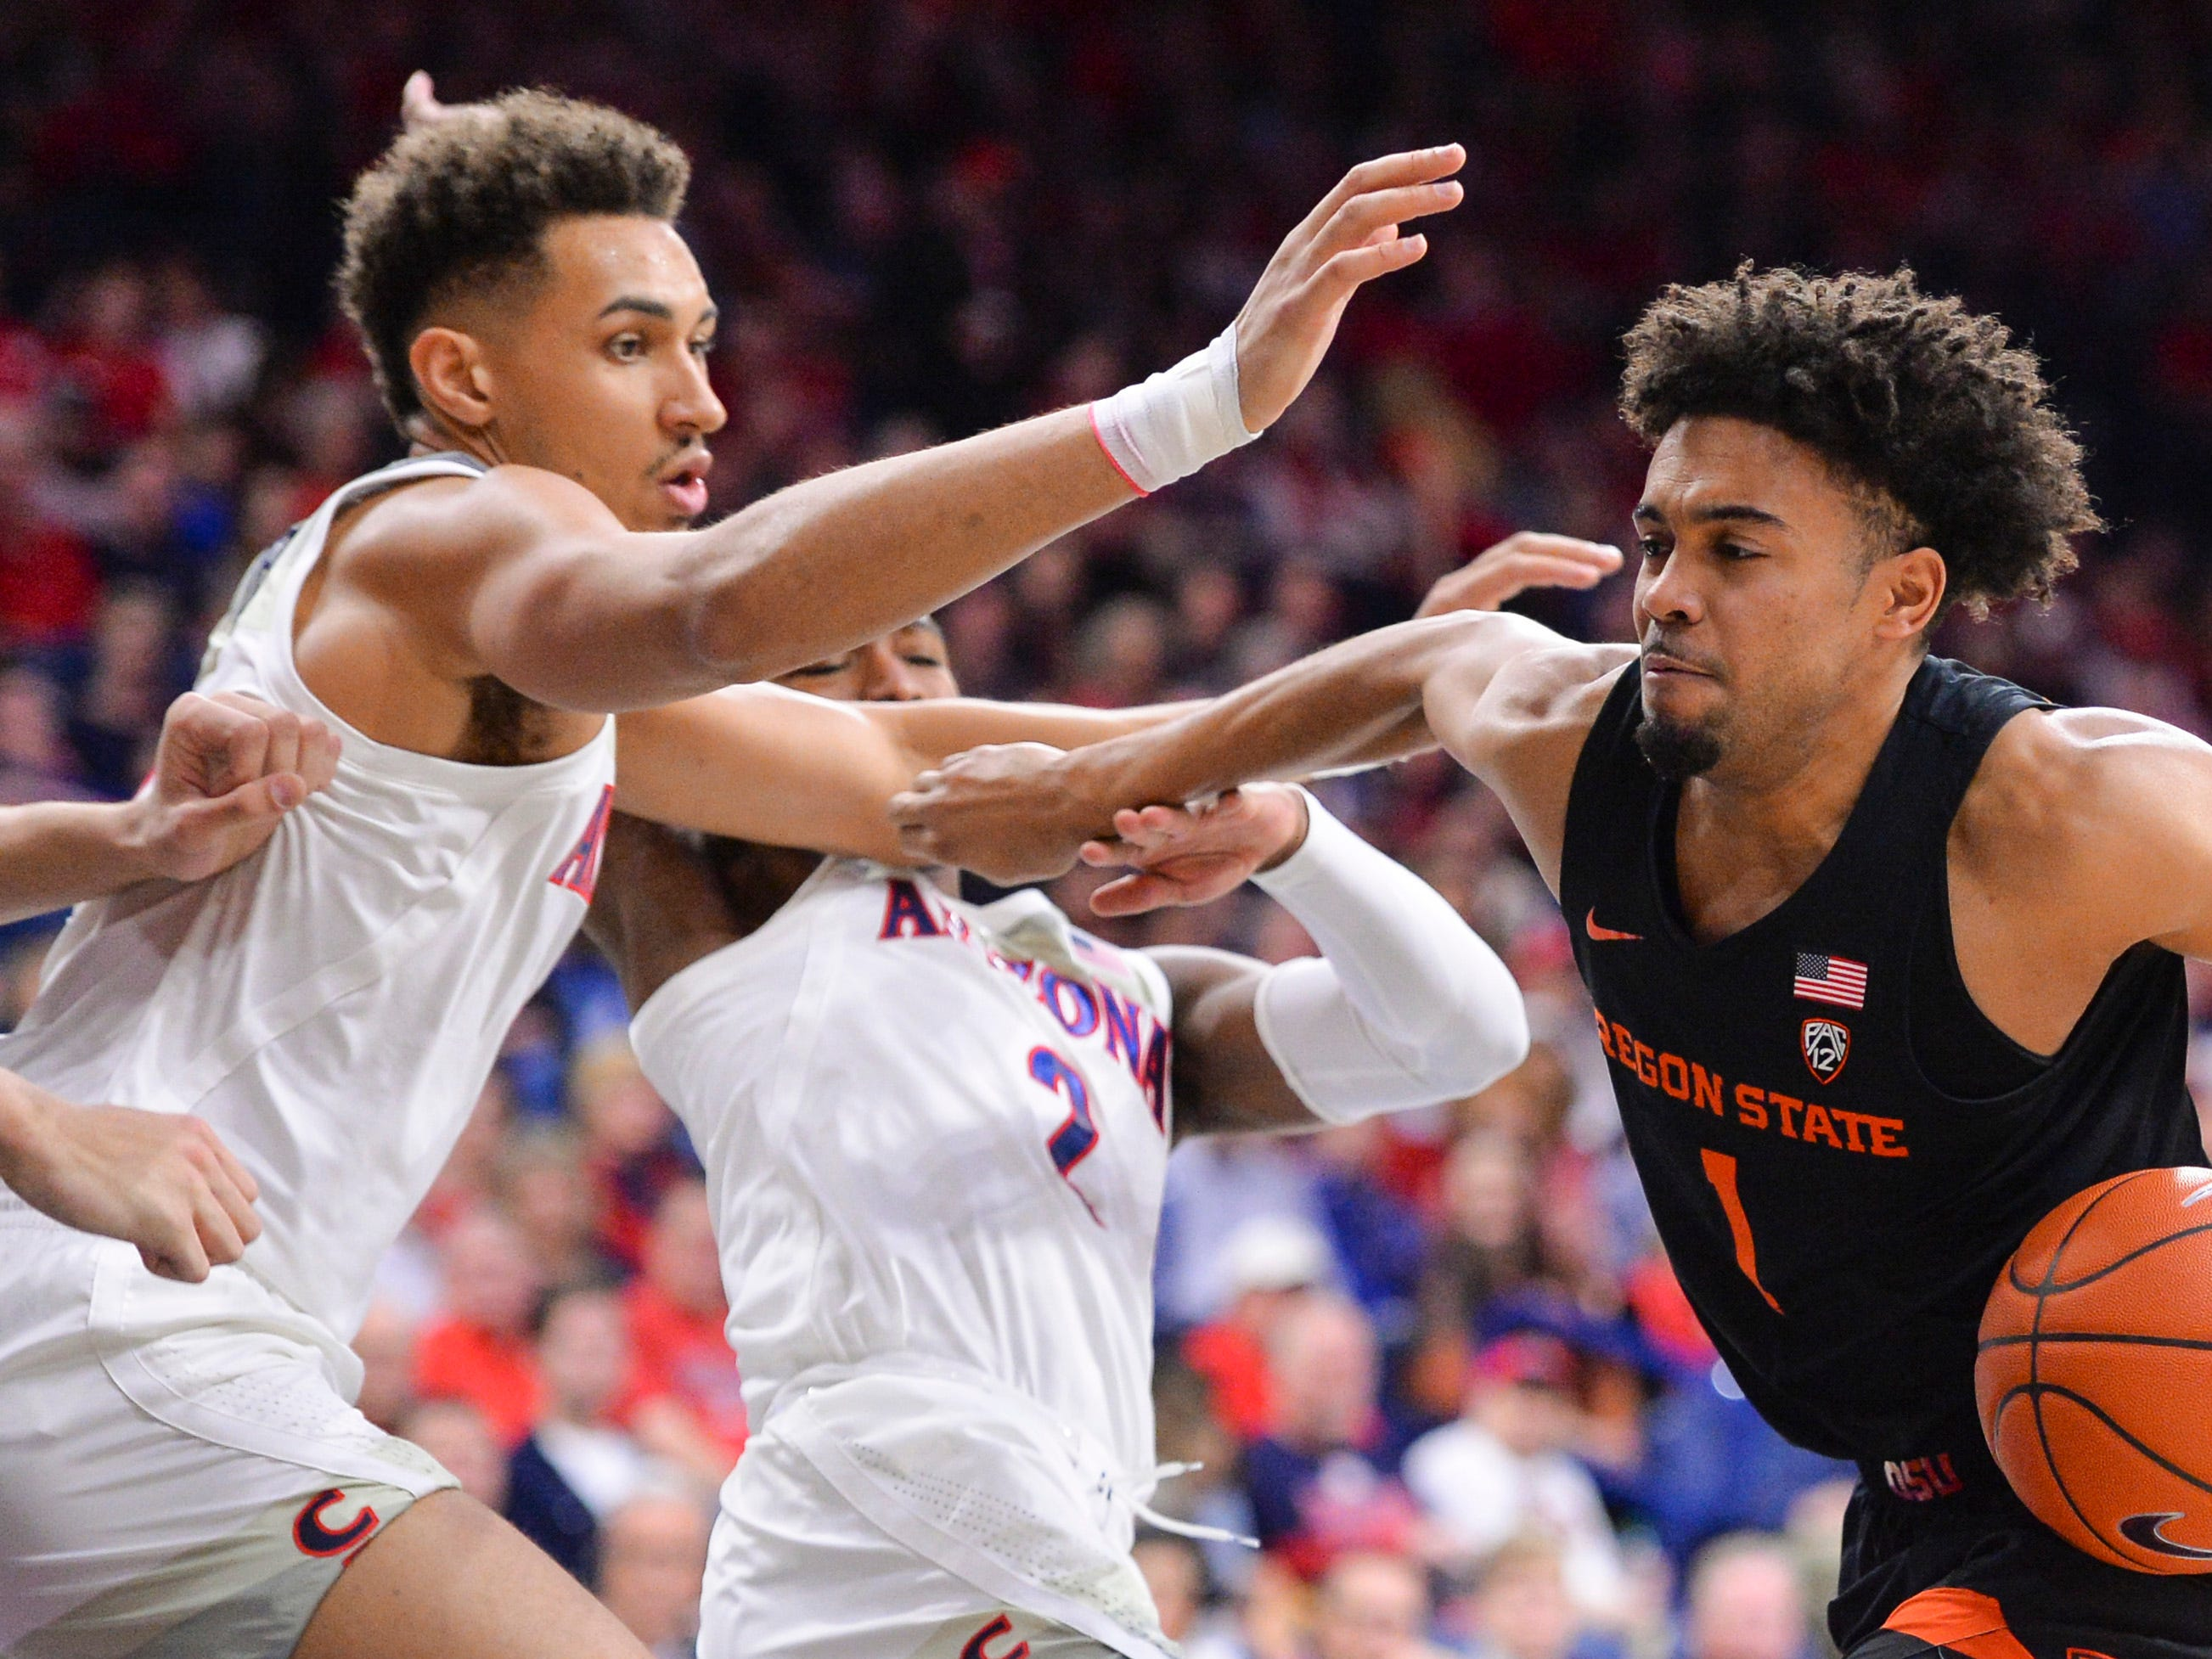 Jan 19, 2019; Tucson, AZ, USA; Oregon State Beavers guard Stephen Thompson Jr. (1) drives to the basket as Arizona Wildcats center Chase Jeter (4) defends during the first half at McKale Center. Mandatory Credit: Casey Sapio-USA TODAY Sports